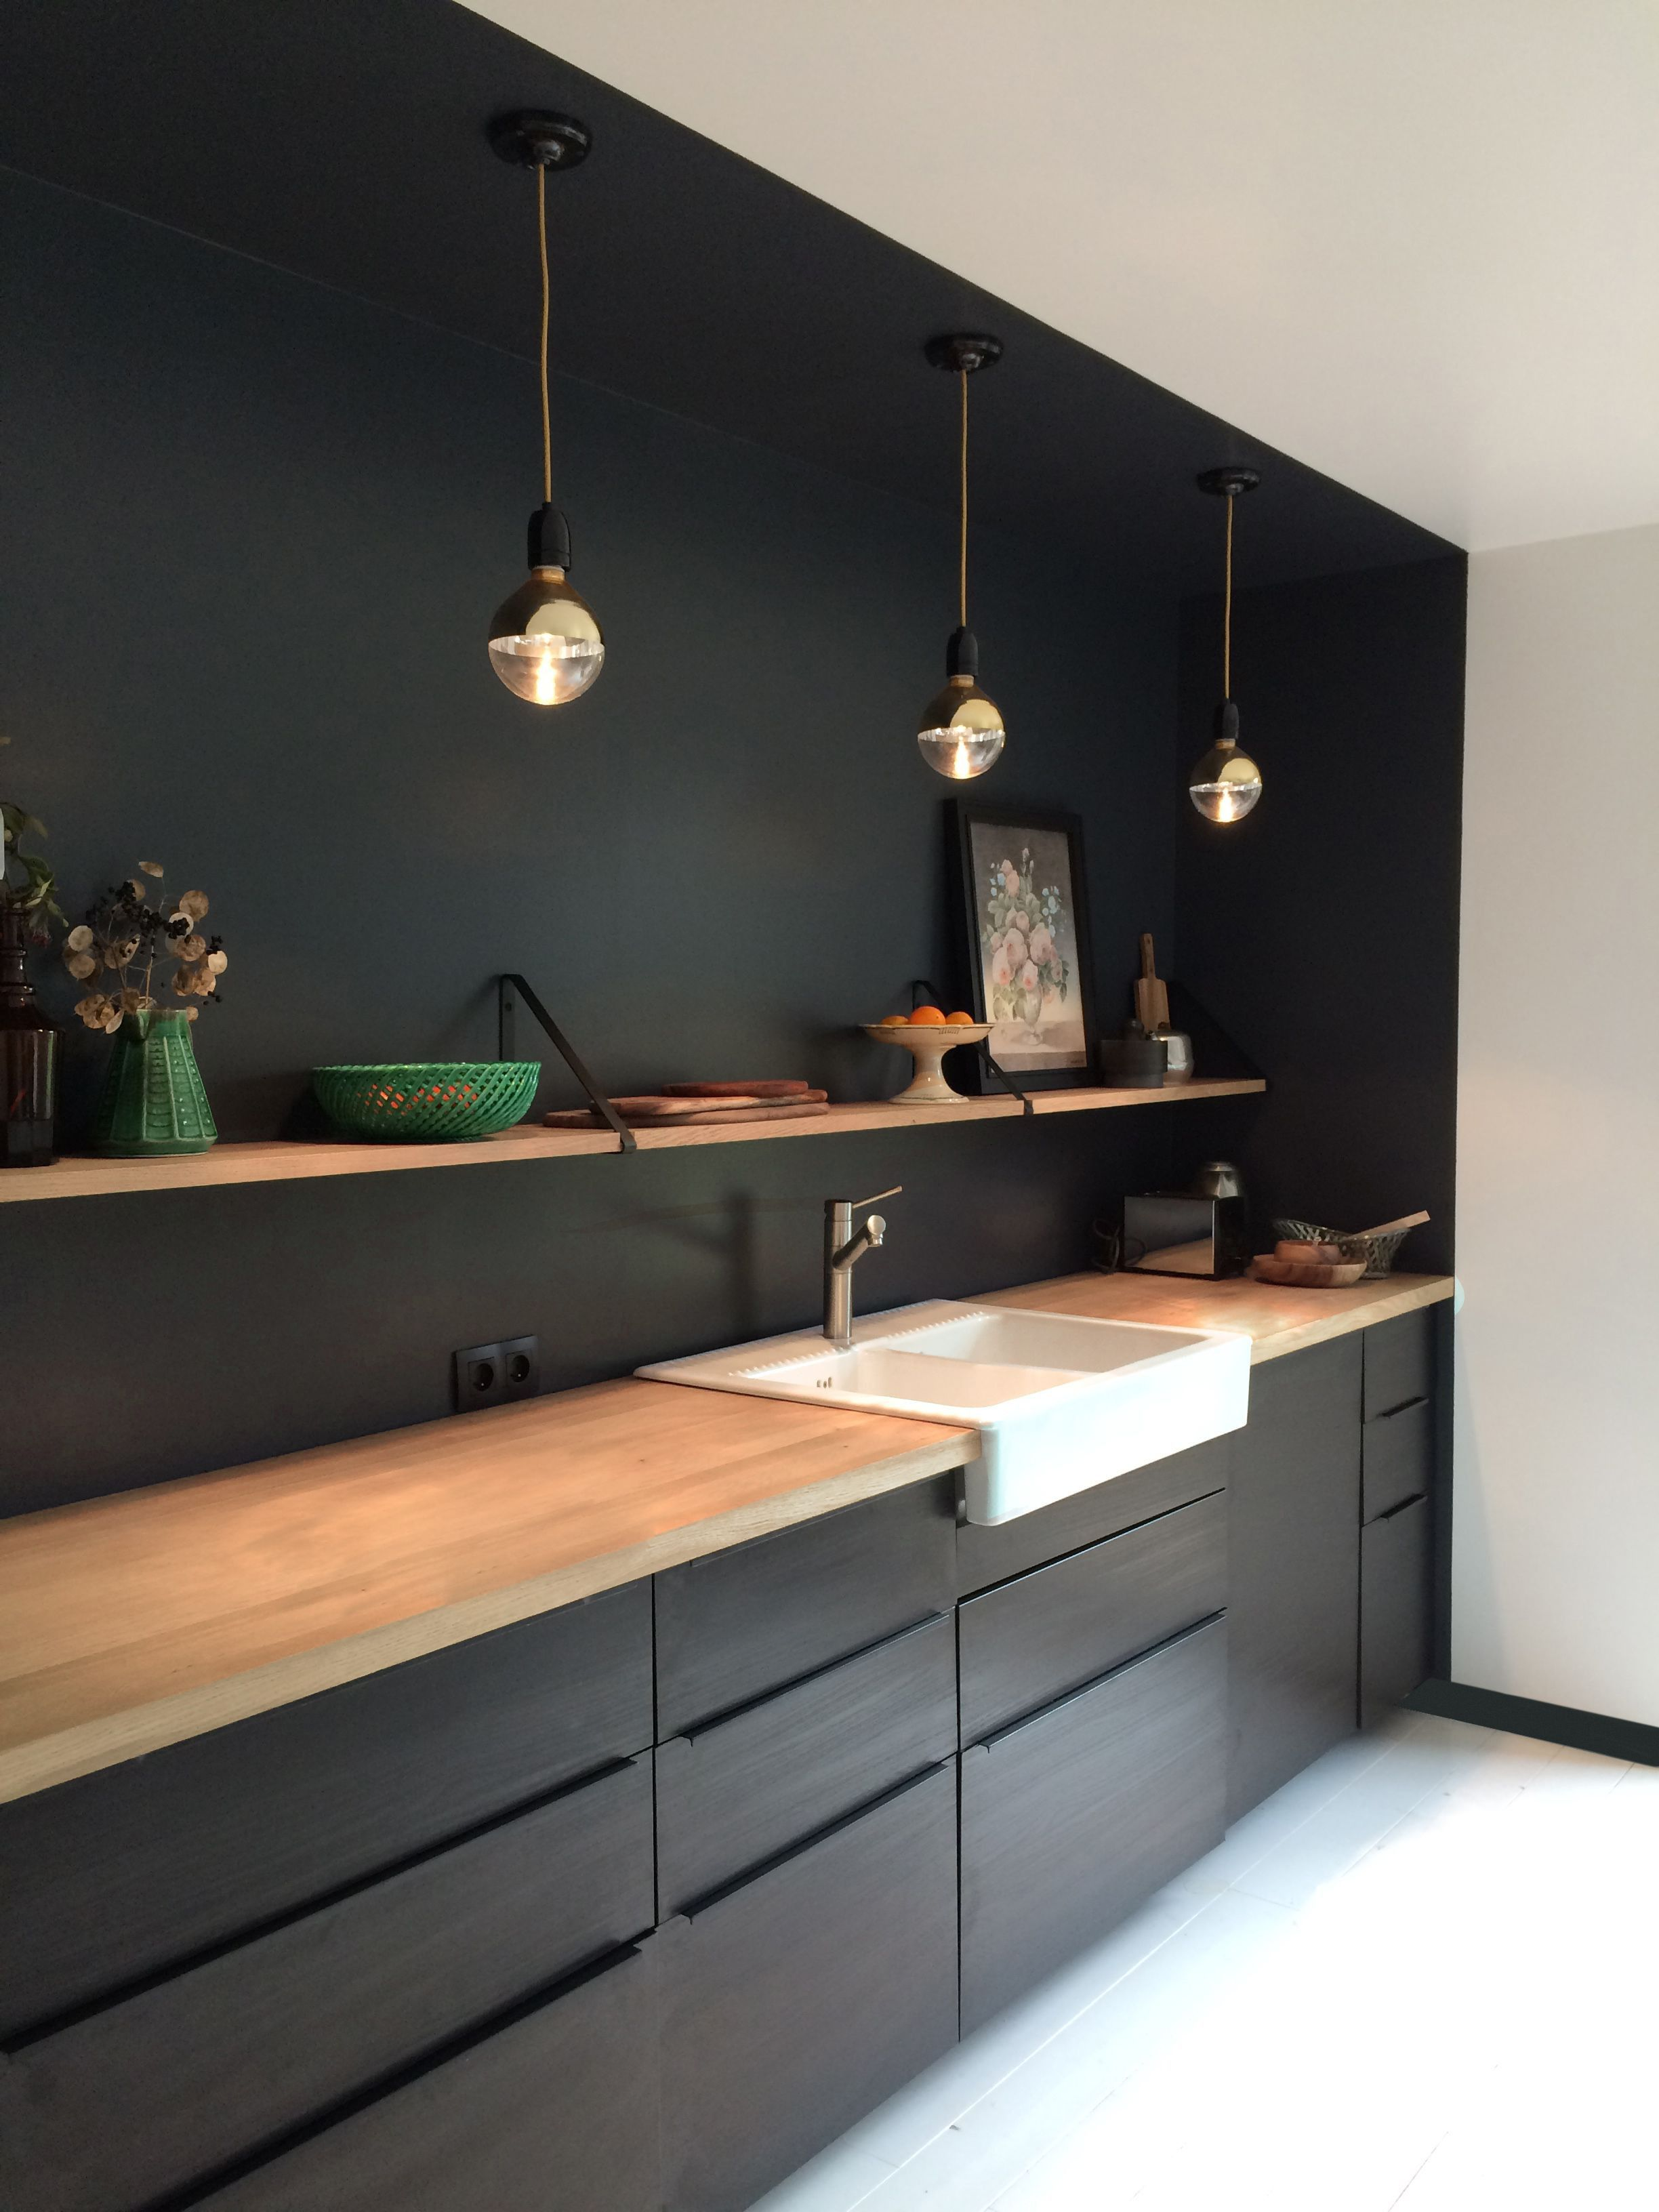 Kitchen Interior Design Home Decor Moody Masculine Matte Black Wall Shelf Floating Cuisines Design Cuisine Noire Cuisine Noire Et Bois